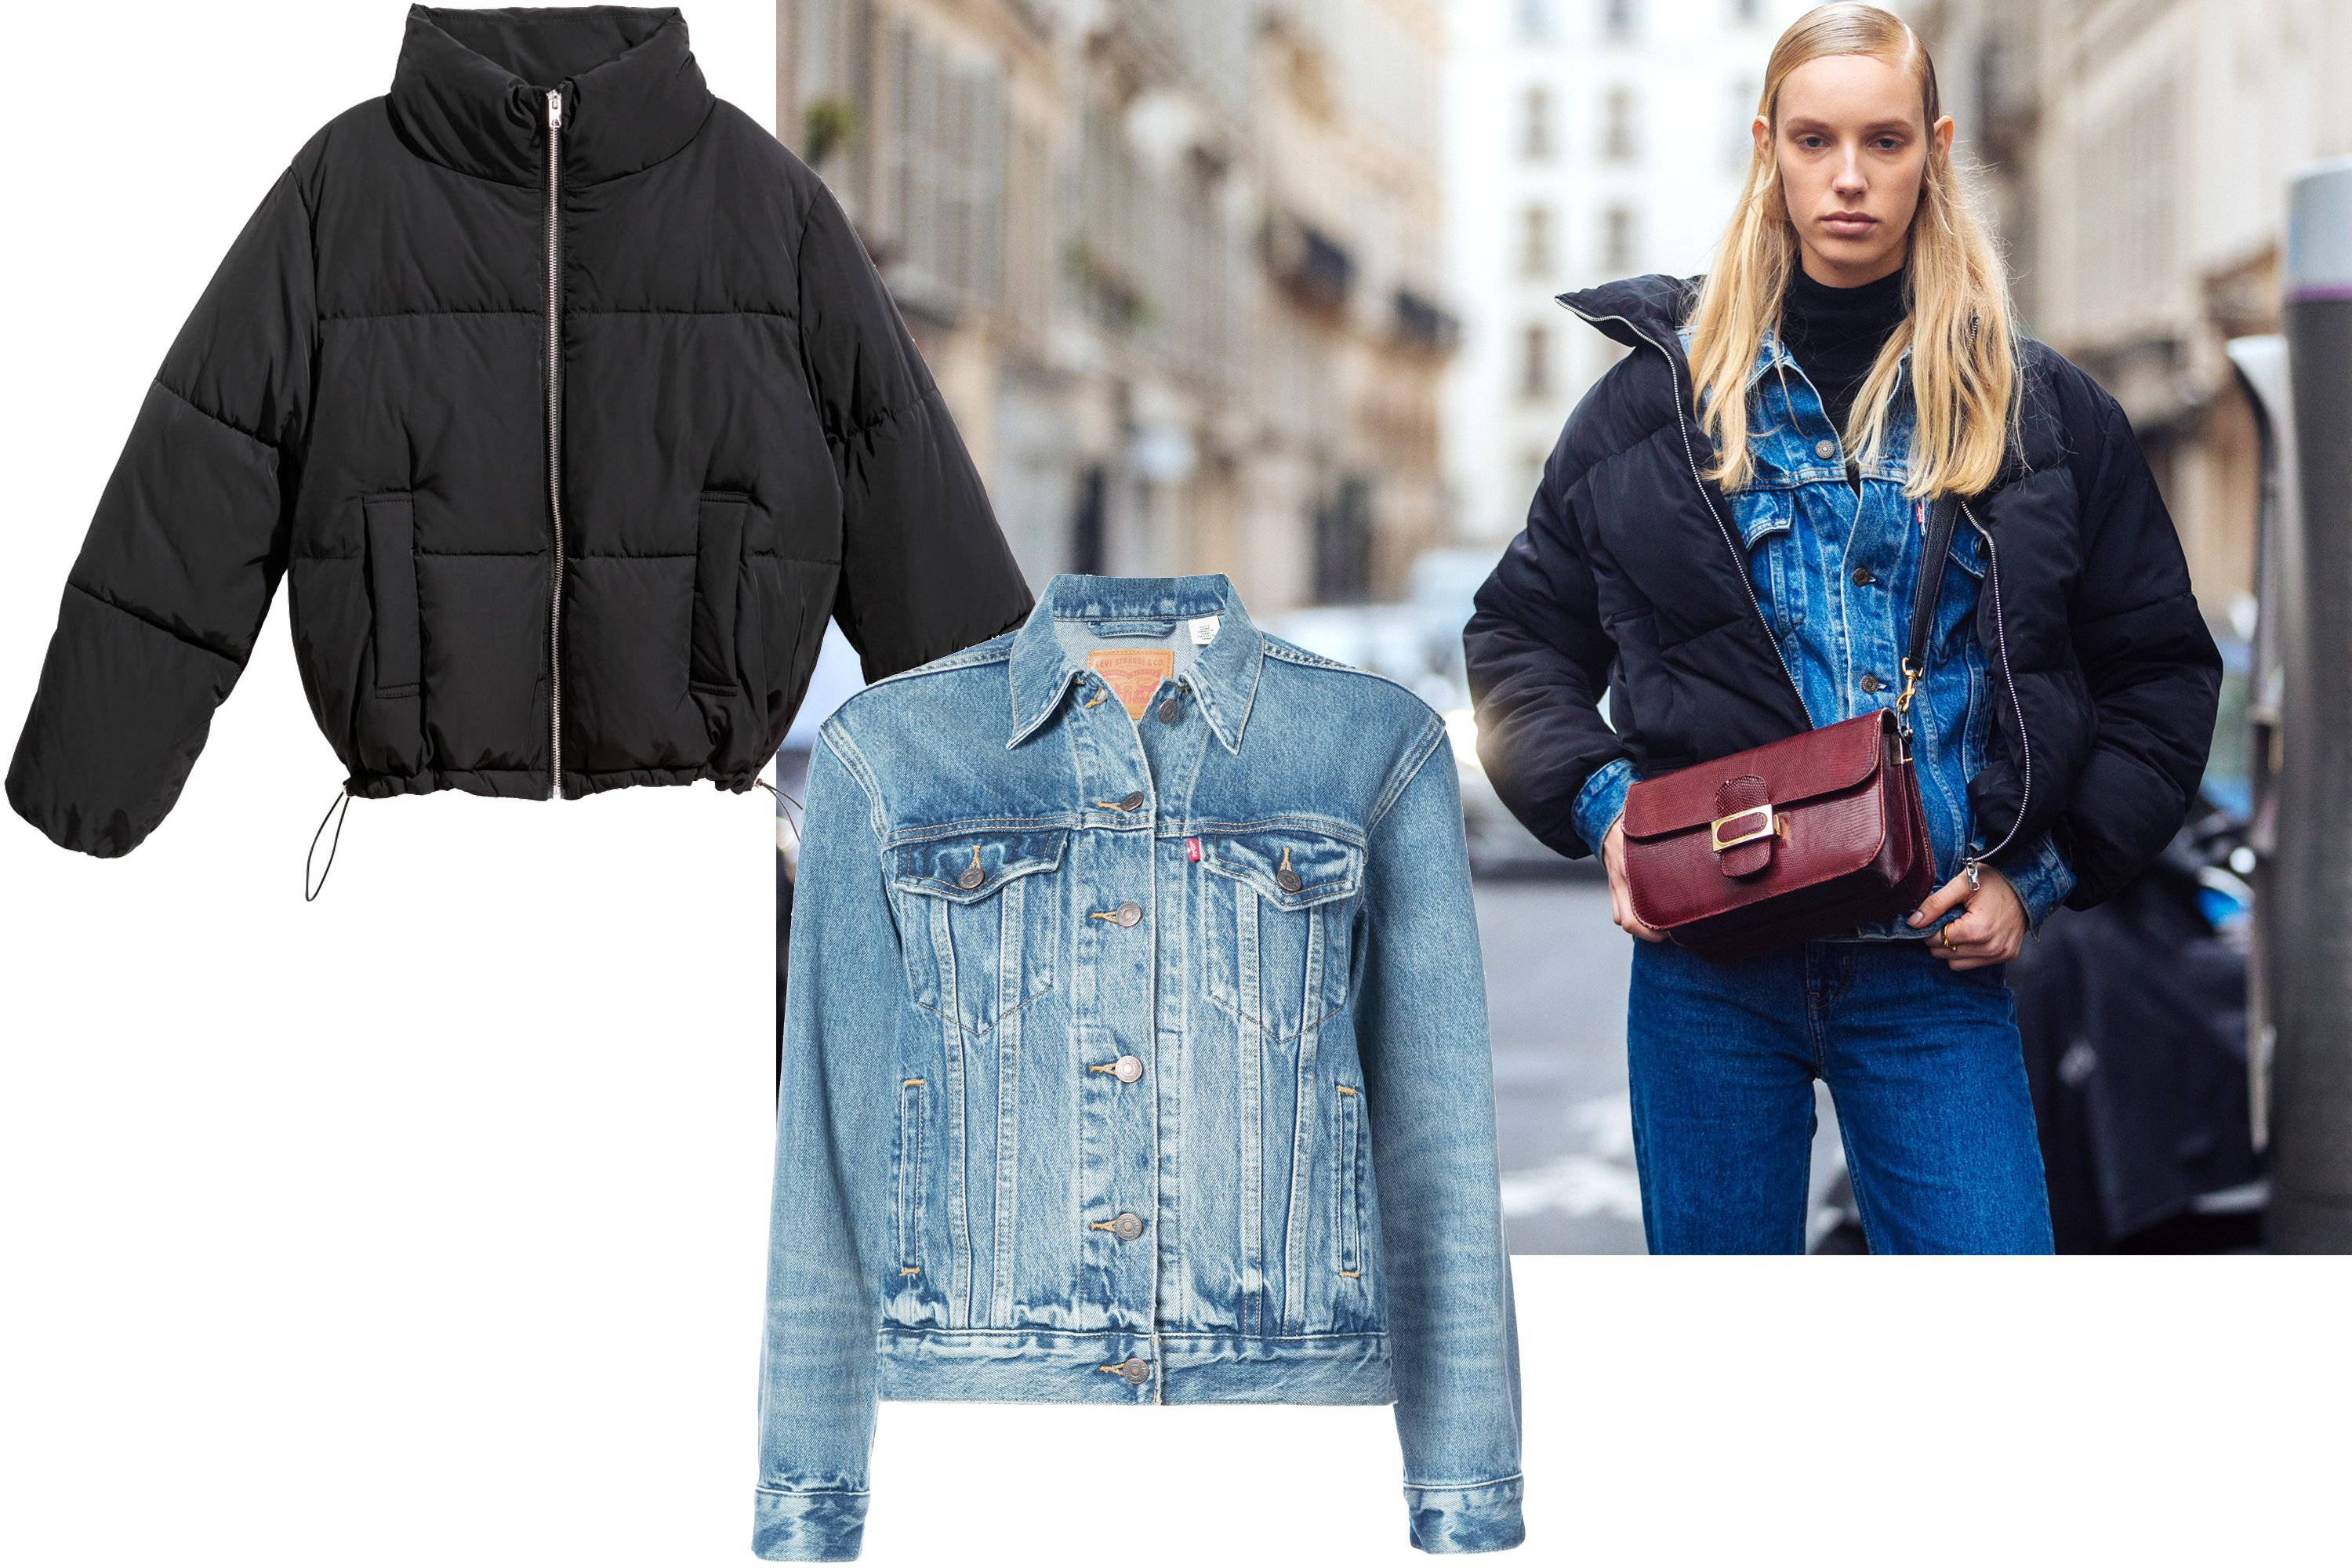 hbz-the-list-denim-jackets-4-getty-1518402592.jpg (3000×2000)